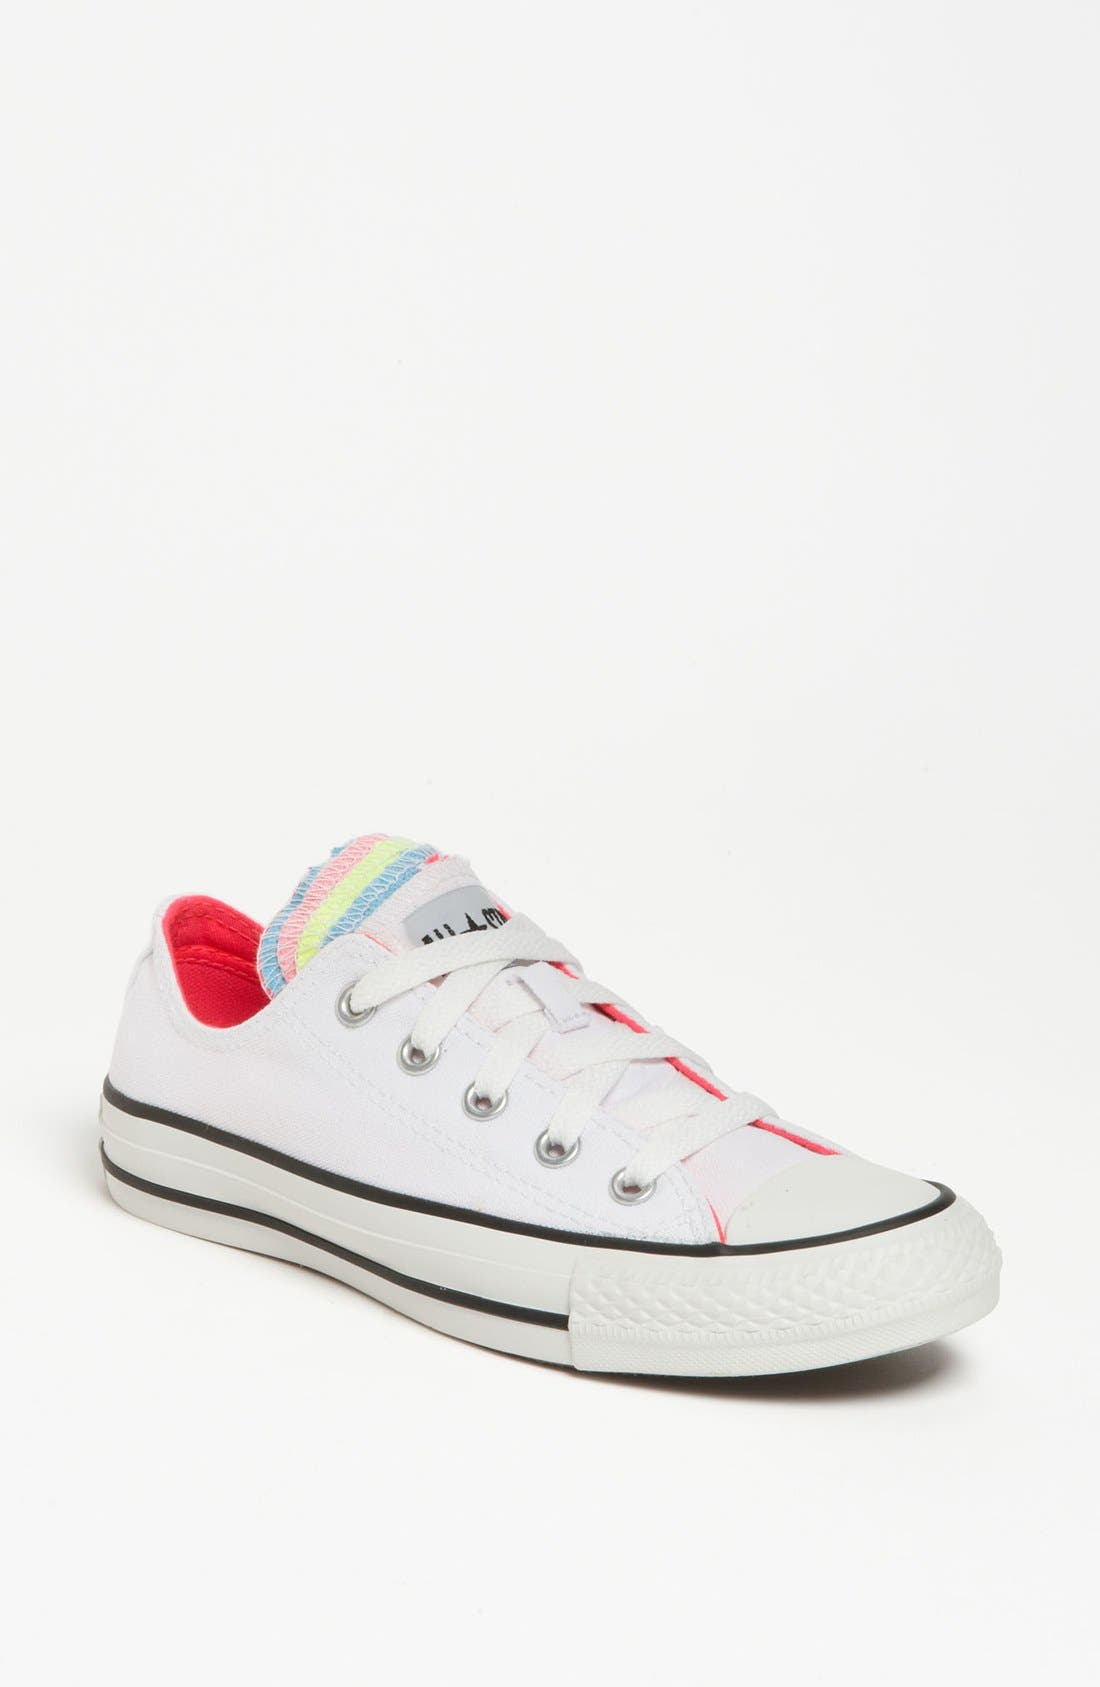 Alternate Image 1 Selected - Converse Chuck Taylor® All Star® Multi Tongue Sneaker